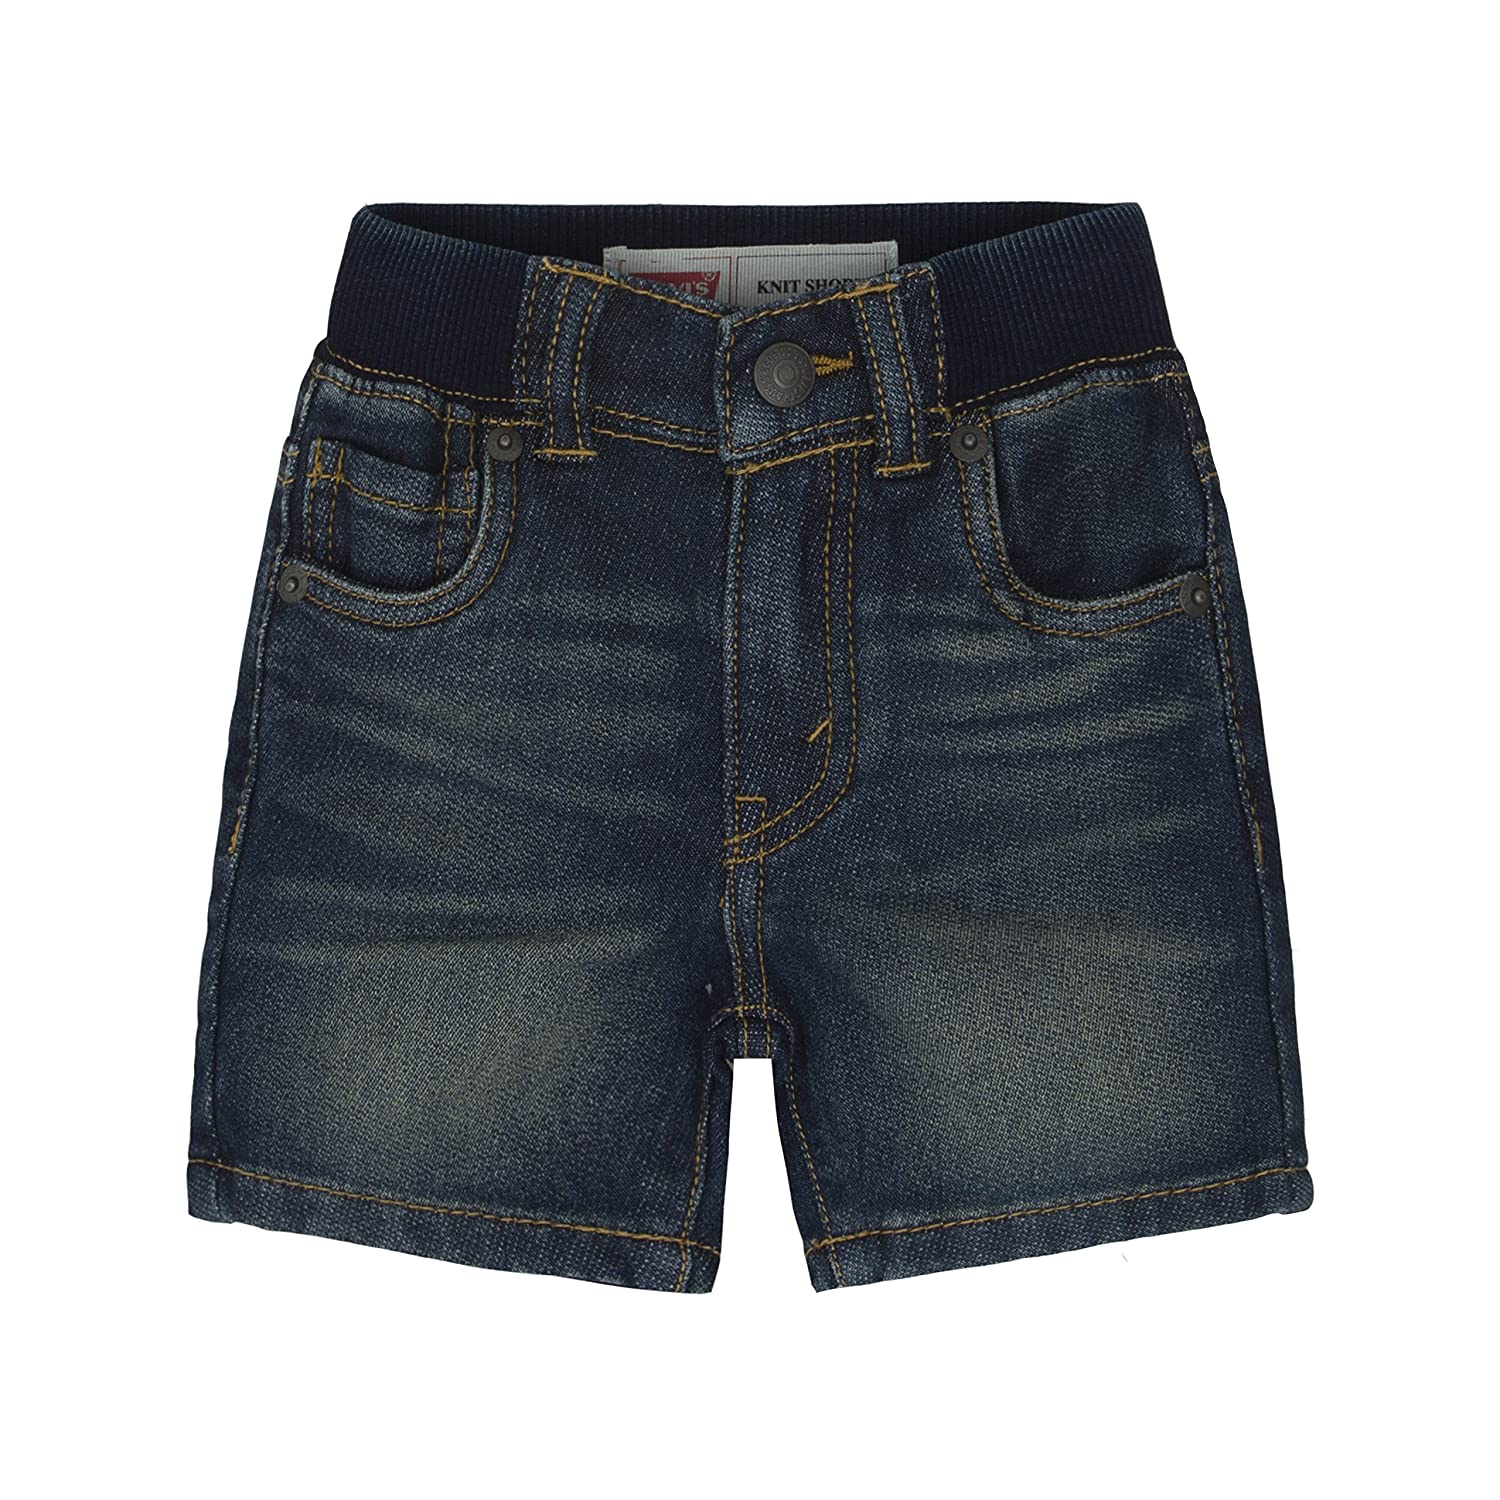 LAPLBEKE Baby Boys Jeans Shorts Toddlers Ripped Jeans Pull up Pants